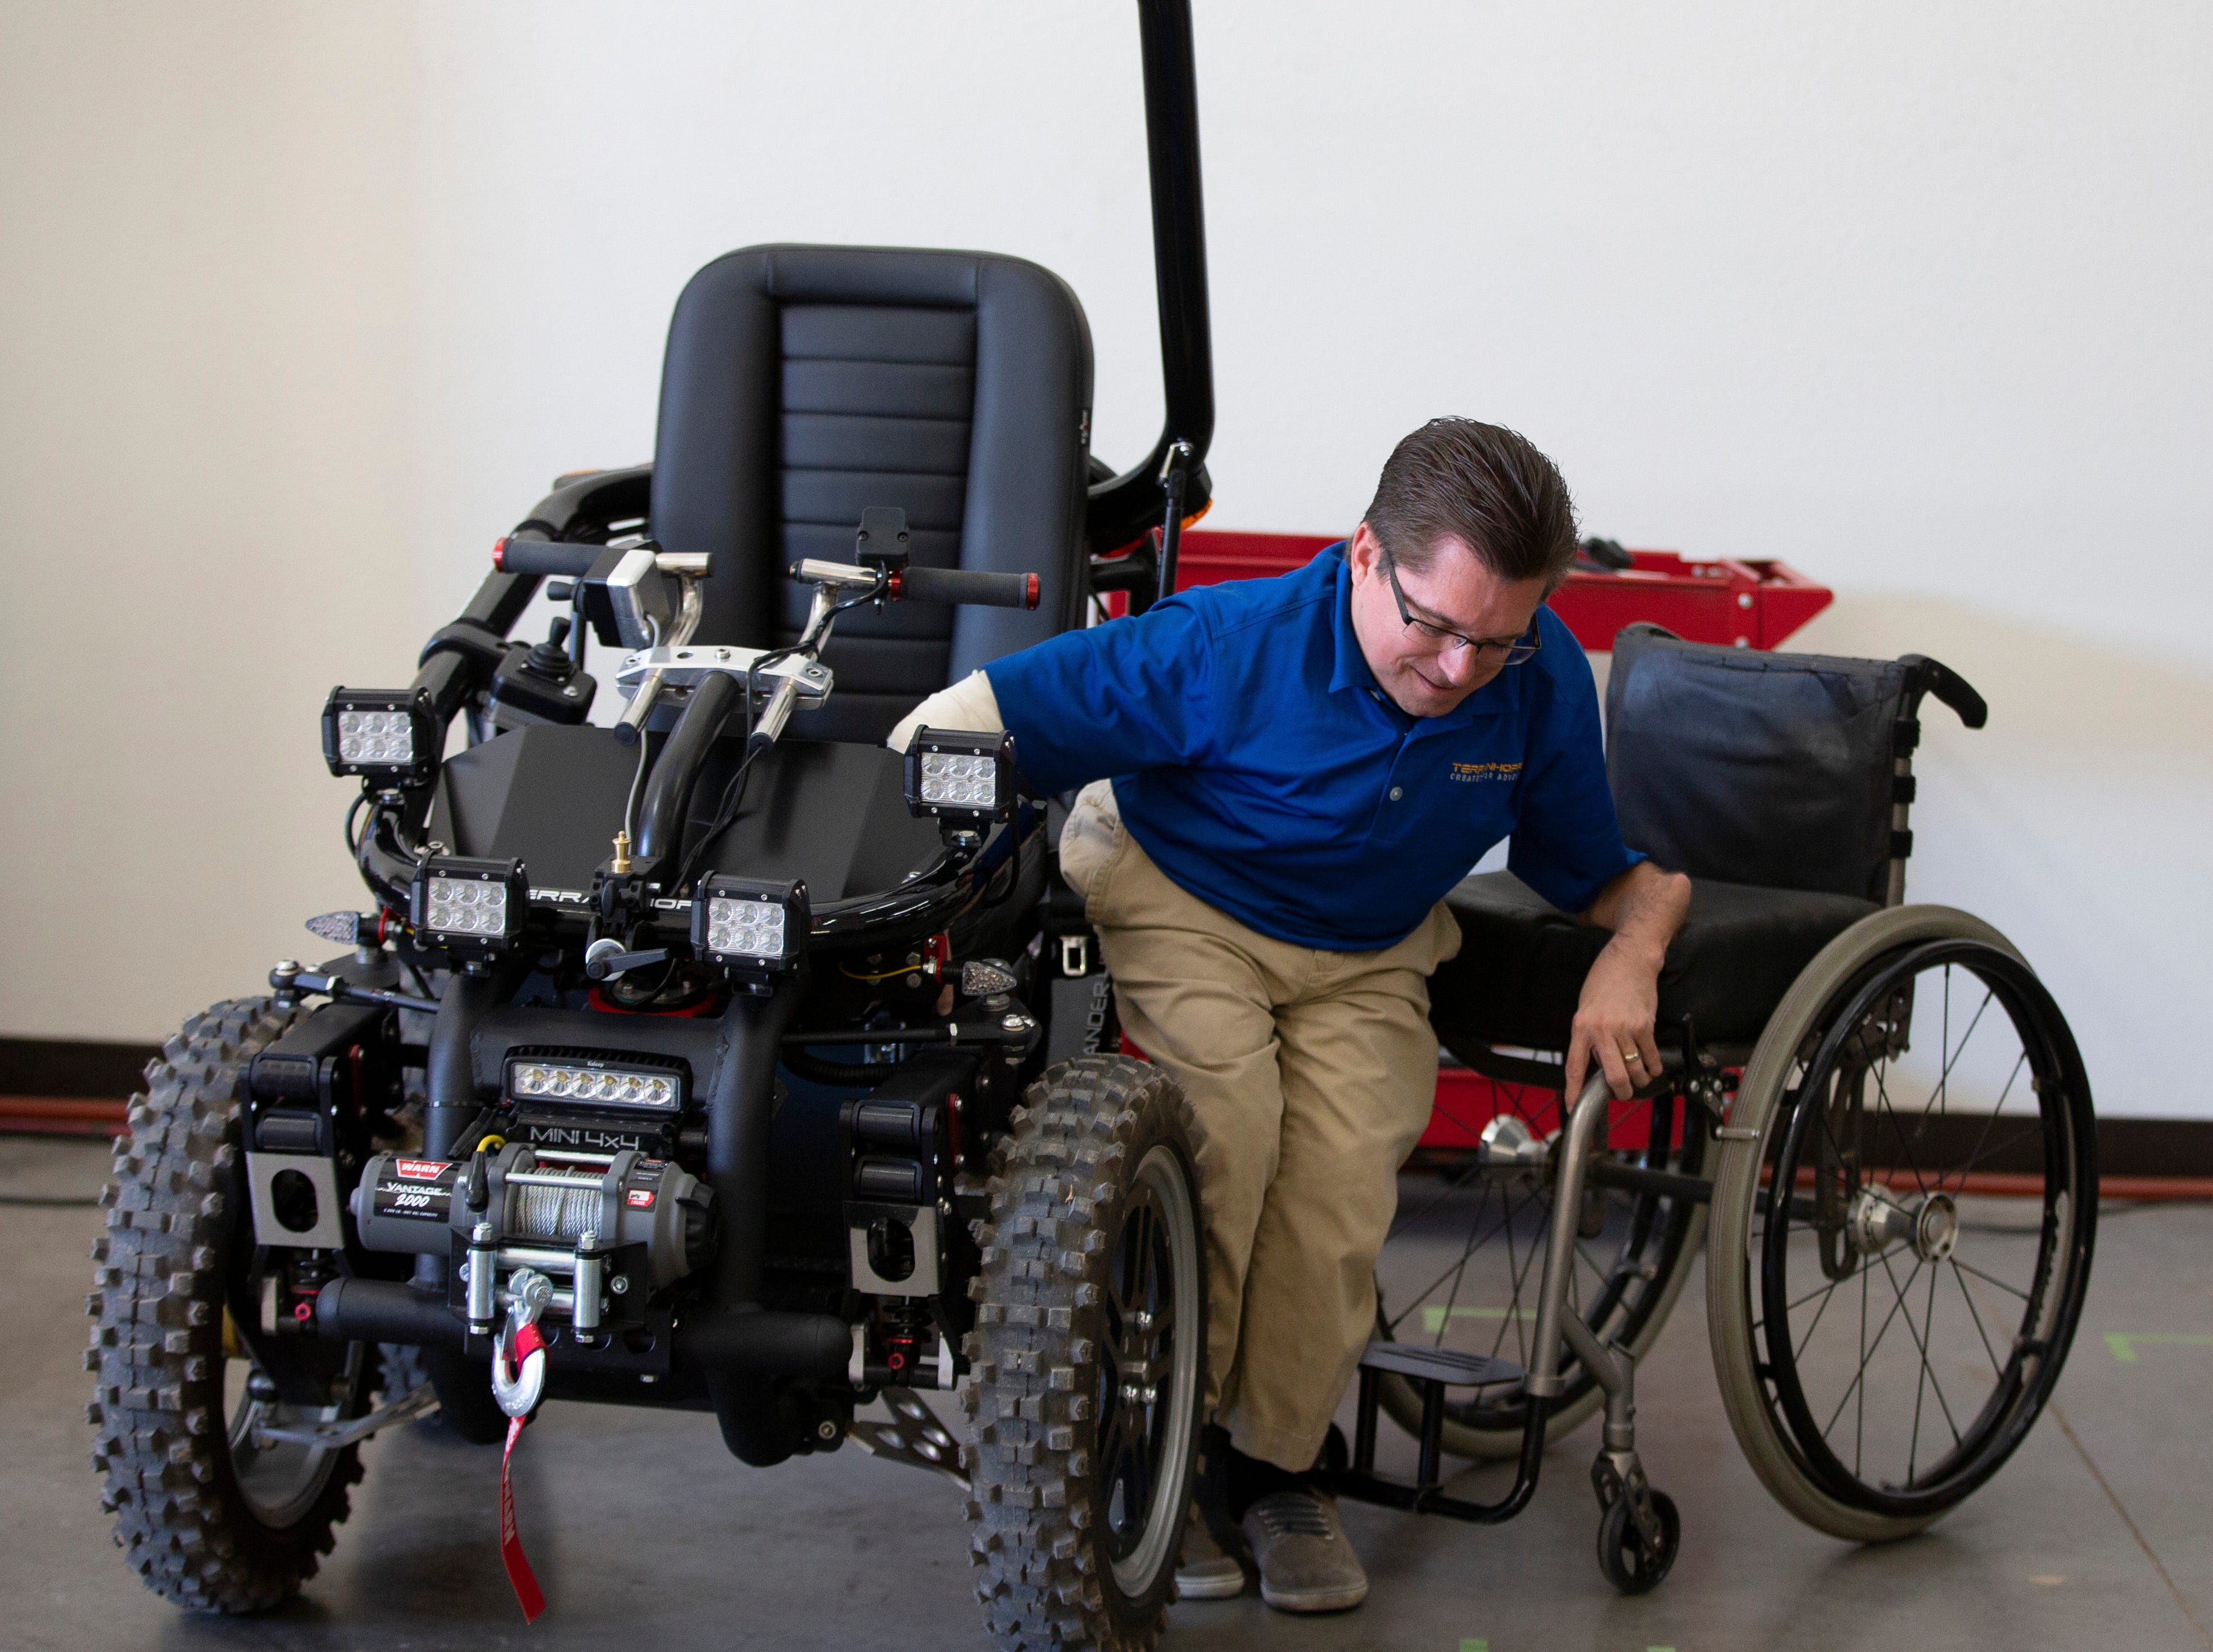 Todd Lemay, owner of TerrainHopper USA in Tempe, makes all-terrain vehicle for people with disabilities or everyday mobility issues.